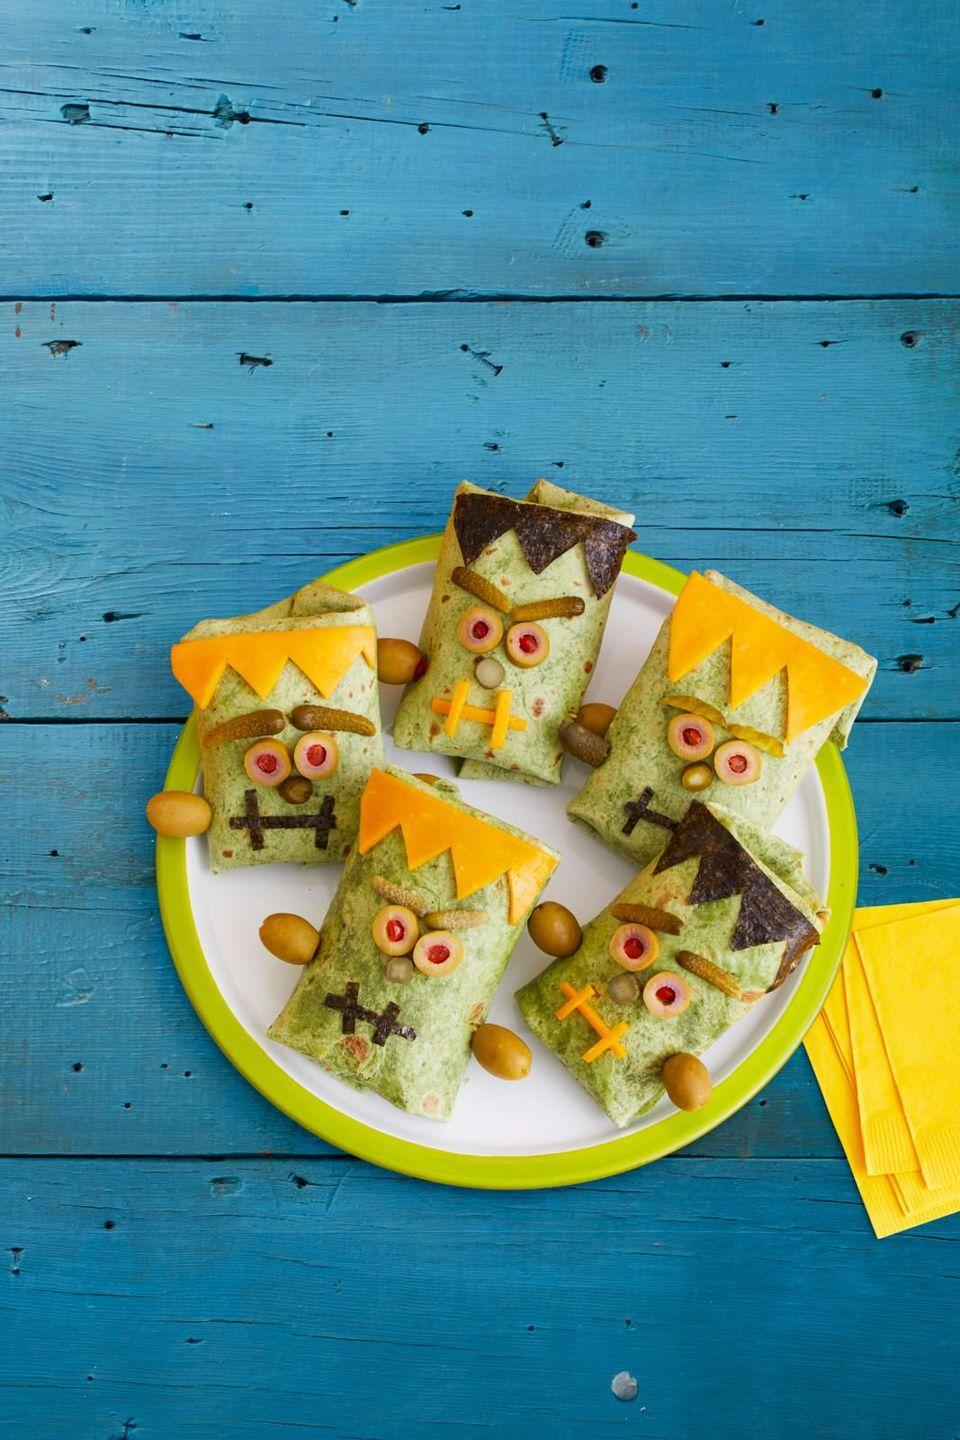 """<p>Your dinner with be a graveyard smash with these tasty bites. And they are completely customizable, so even picky eaters will be pleased. </p><p><strong><em><a href=""""https://www.womansday.com/food-recipes/a33564111/monster-wraps-recipe/"""" rel=""""nofollow noopener"""" target=""""_blank"""" data-ylk=""""slk:Get the Monster Wraps recipe."""" class=""""link rapid-noclick-resp"""">Get the Monster Wraps recipe.</a></em></strong></p>"""